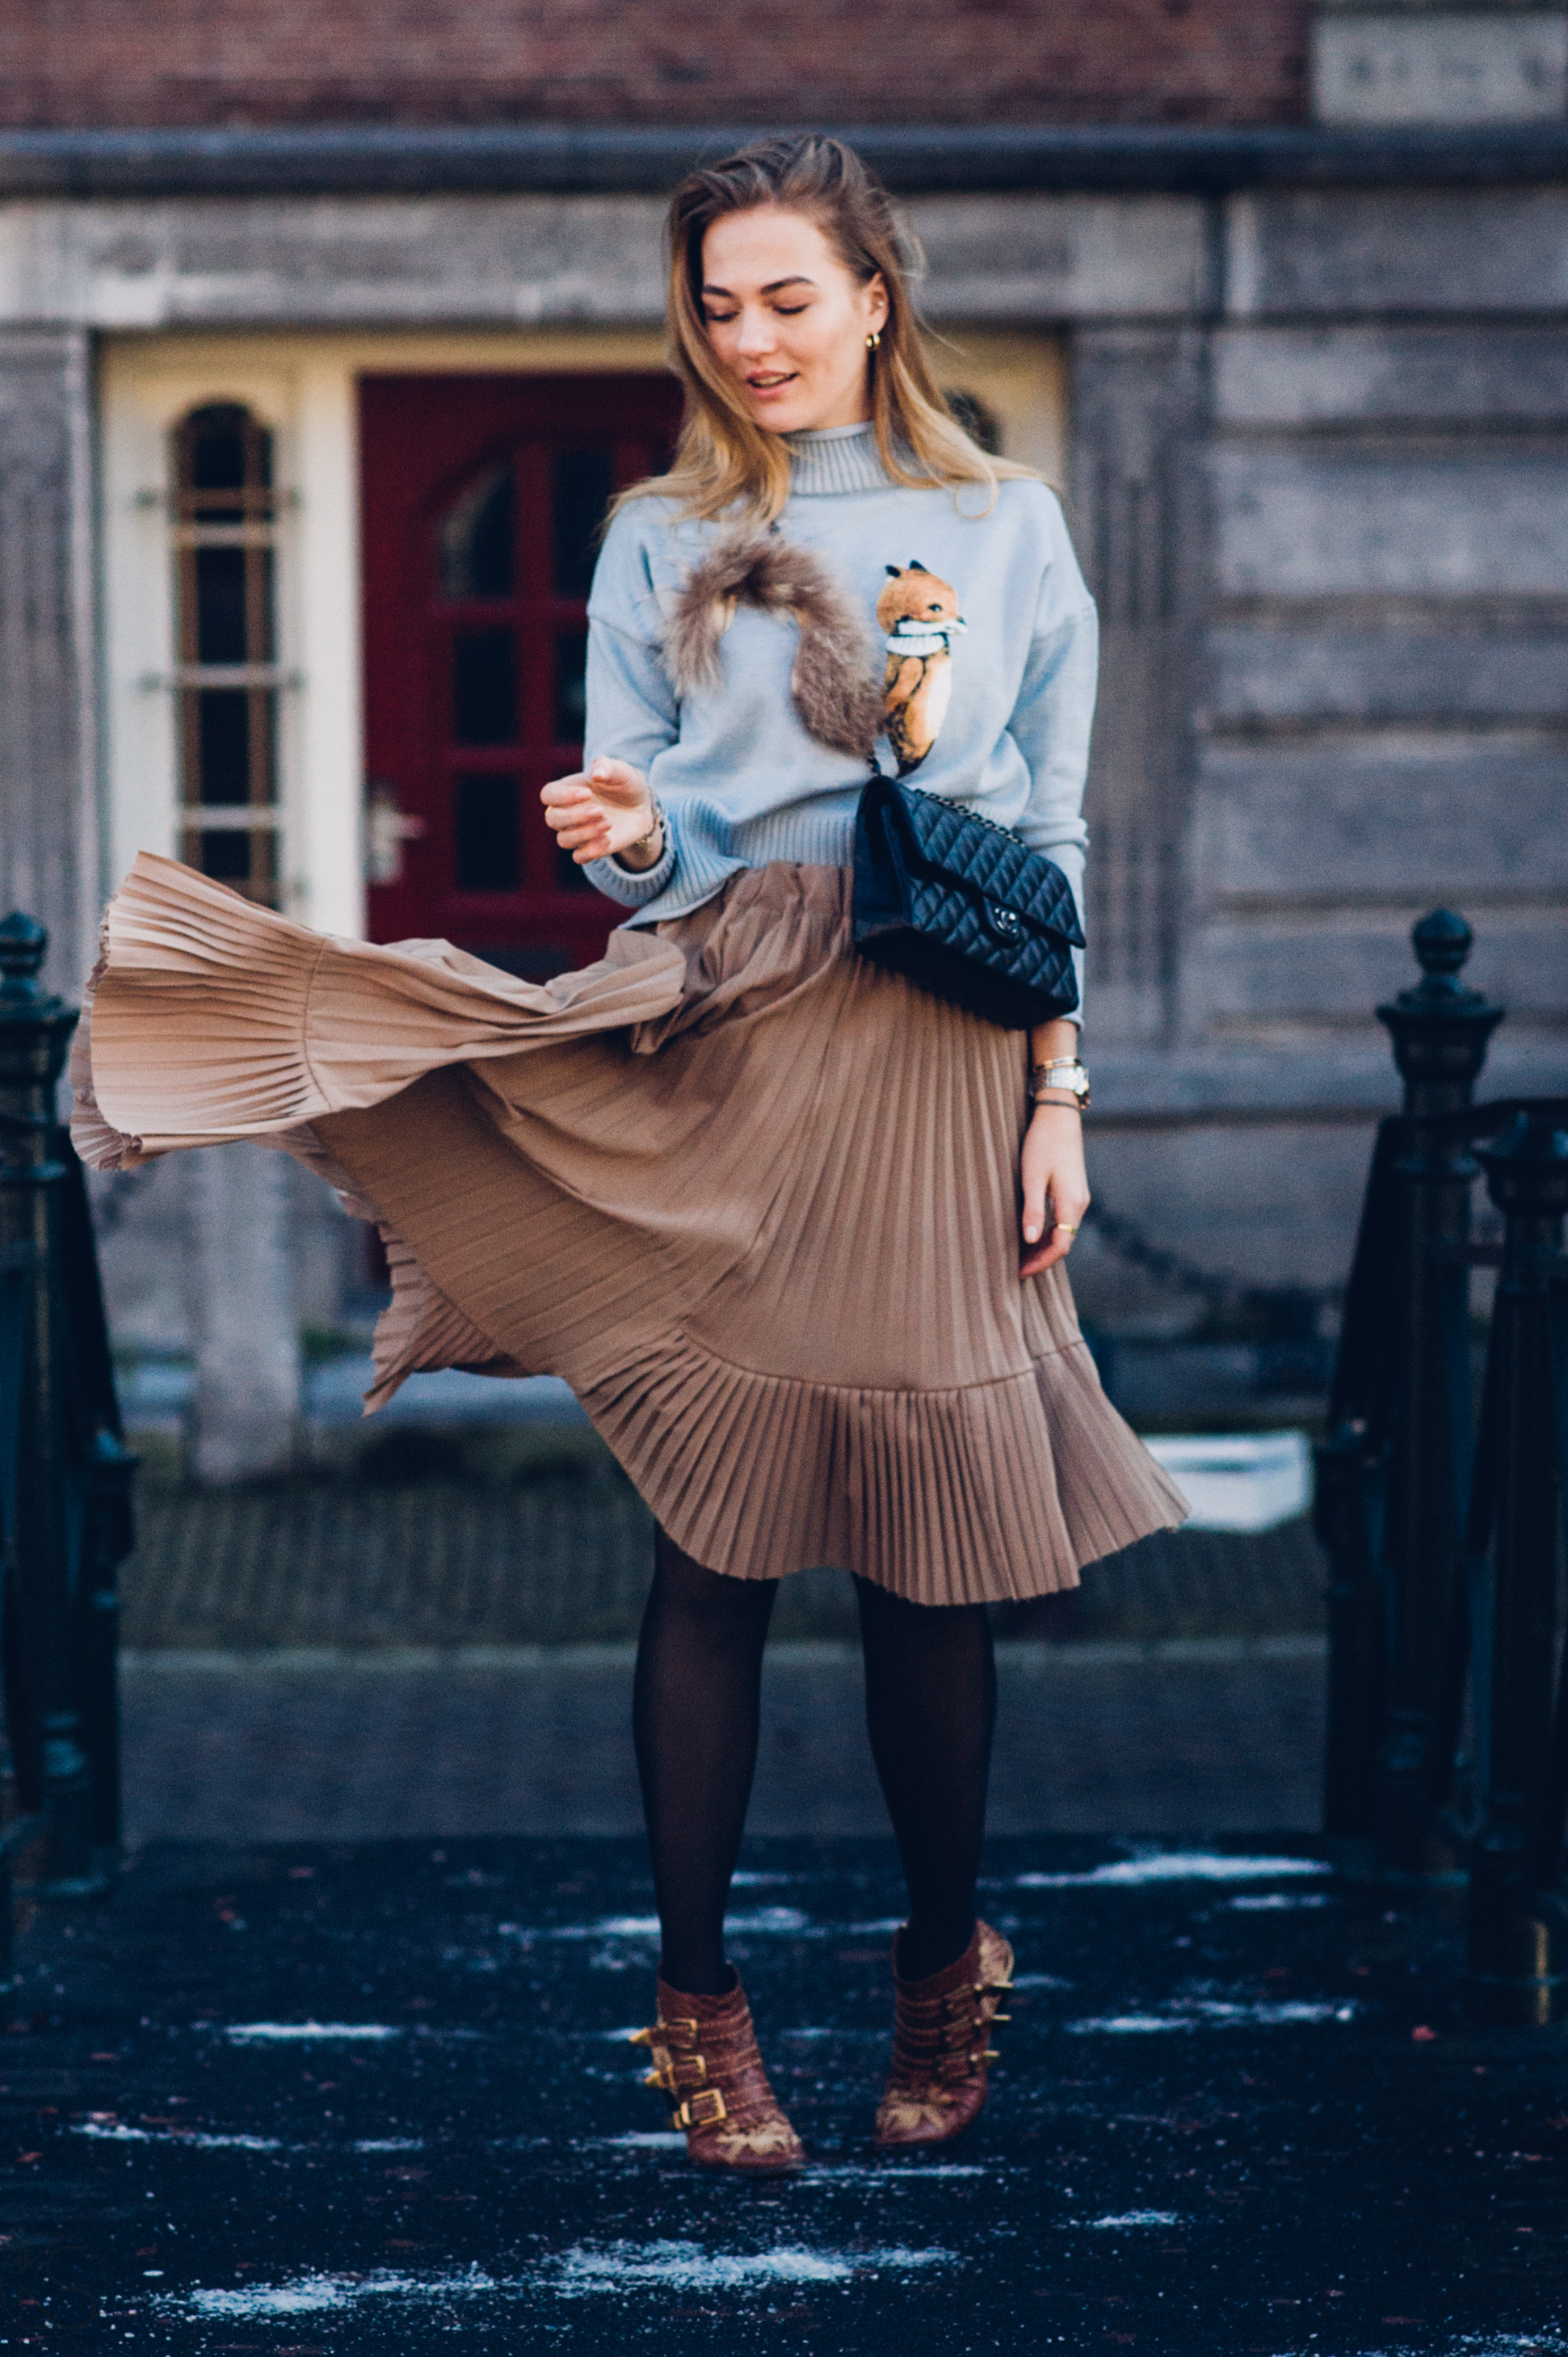 ways to improve your style, ways to improve your style in 2017, improve your style, choies, chloe, chloe suzanna, chanel, chanel classic, pleated skirt, floortjeloves